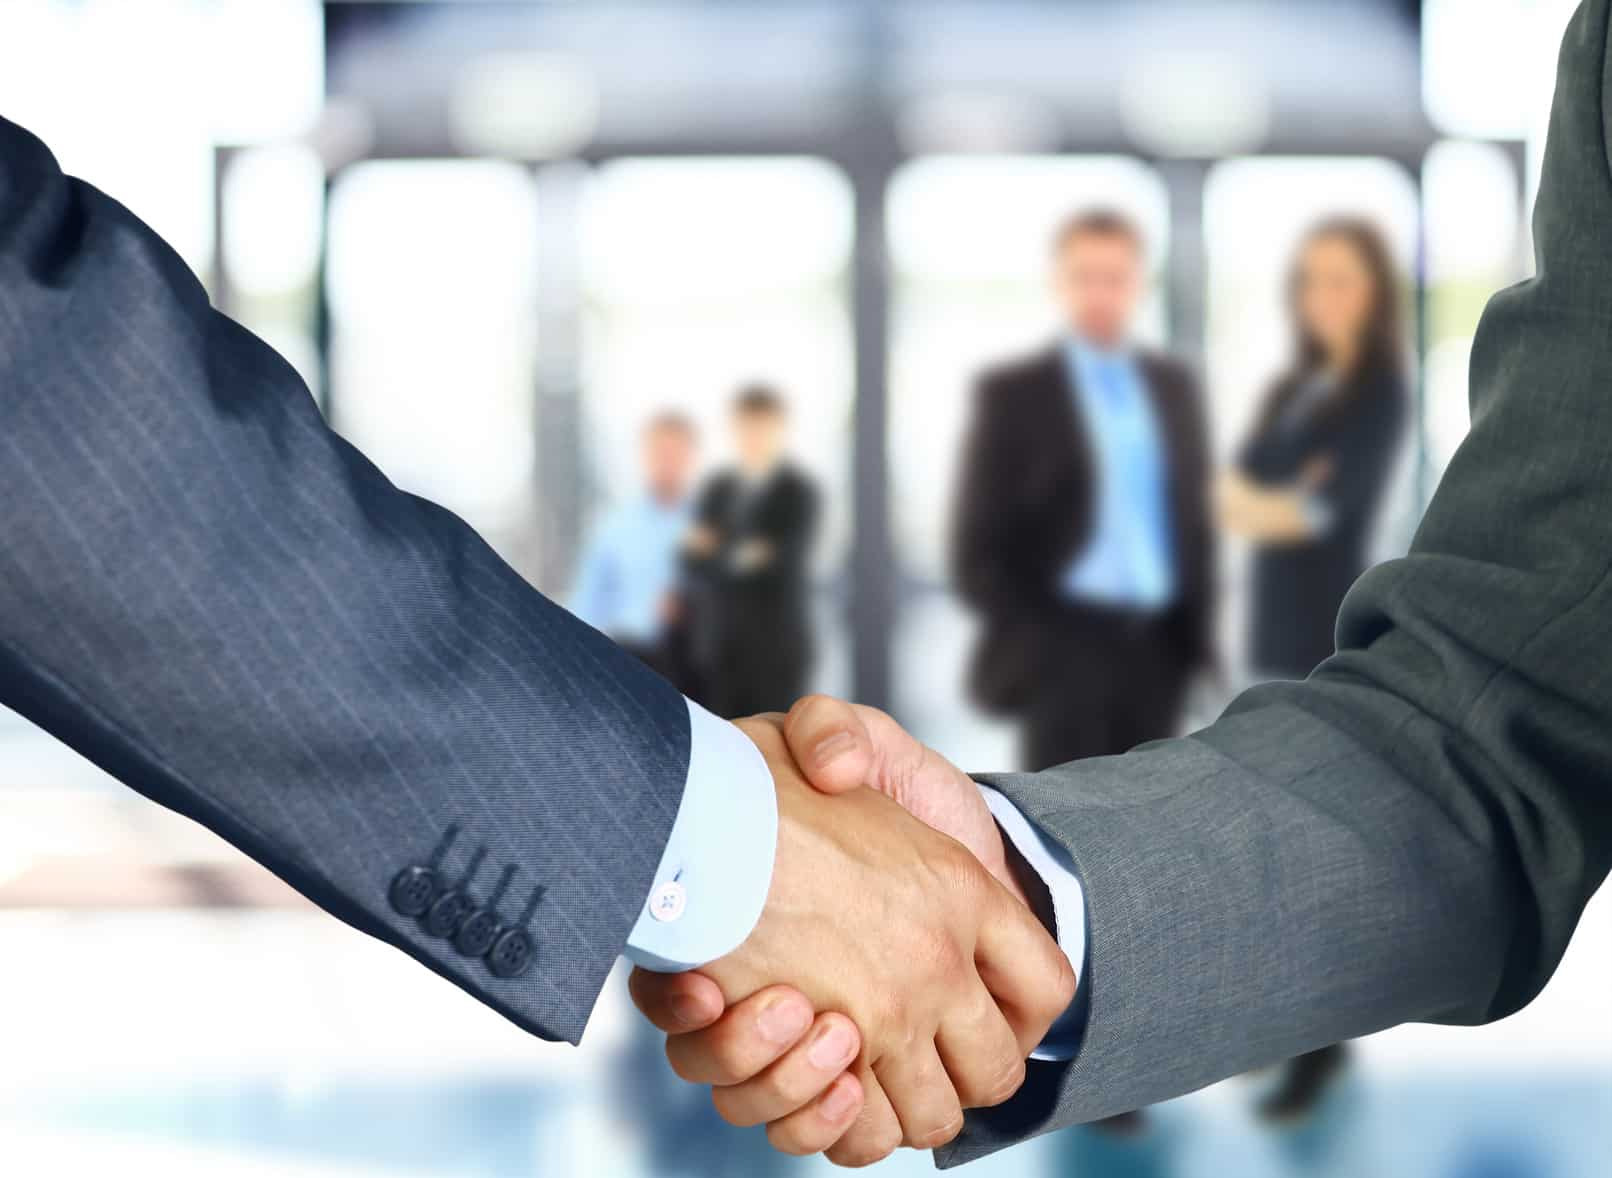 Handshake image for Sales Techniques article